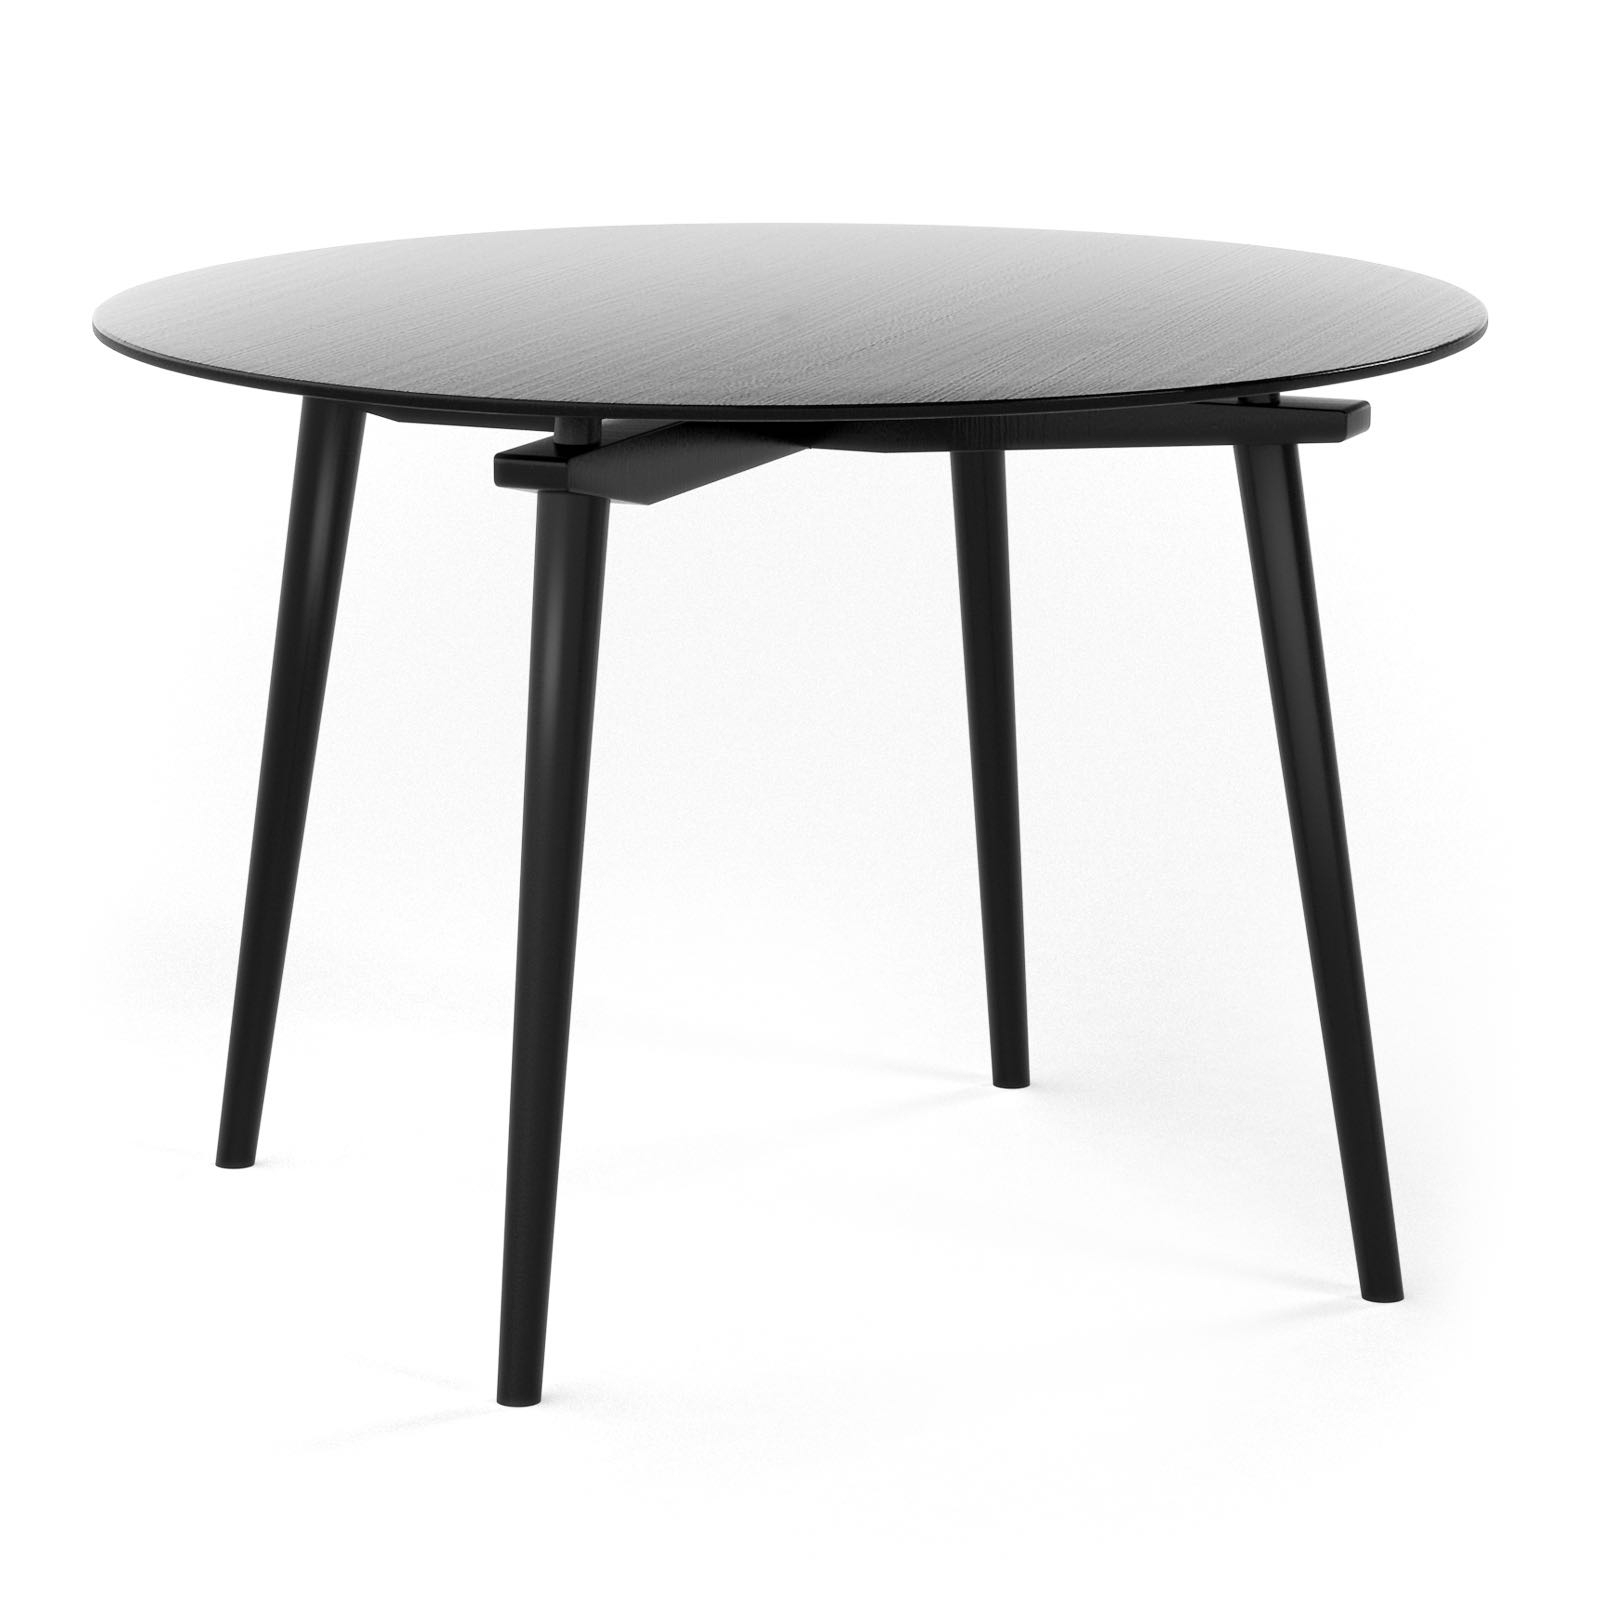 Dining Tables 120X60 Throughout Well Known Dining Table Ccrex Kralj In Dining Tables (Gallery 34 of 44)